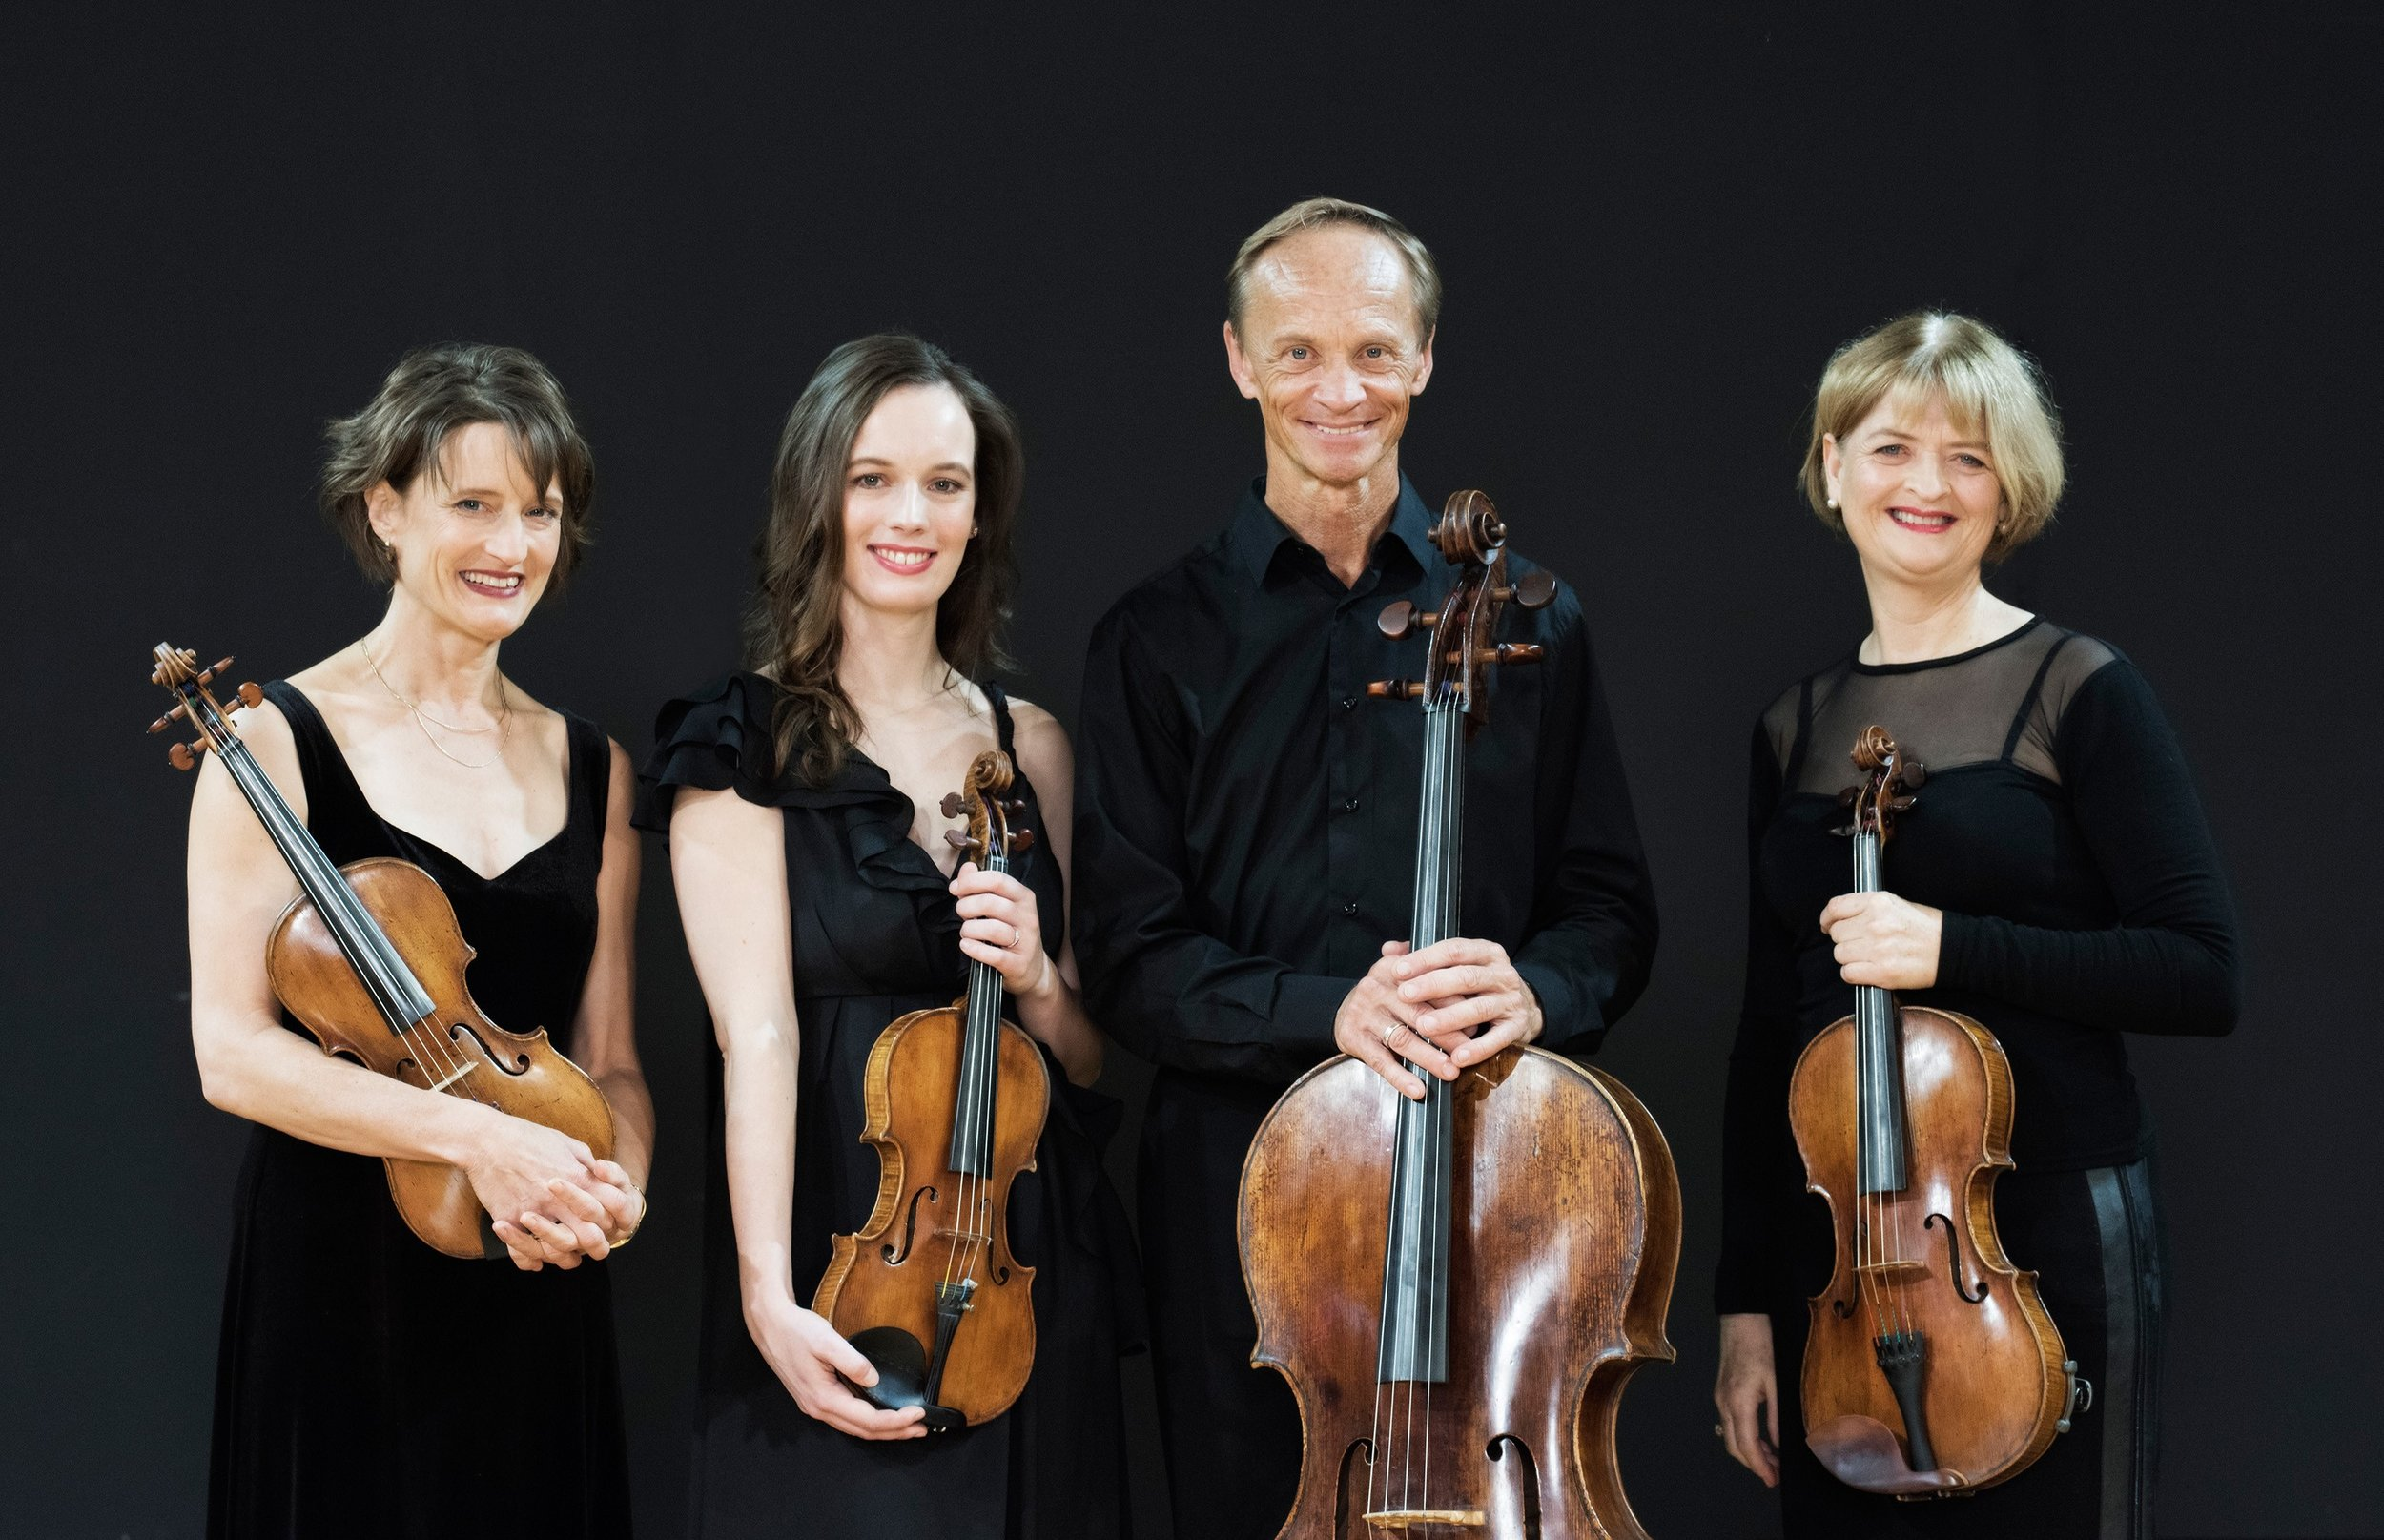 Above: Monique (second from left) with the New Zealand String Quartet.